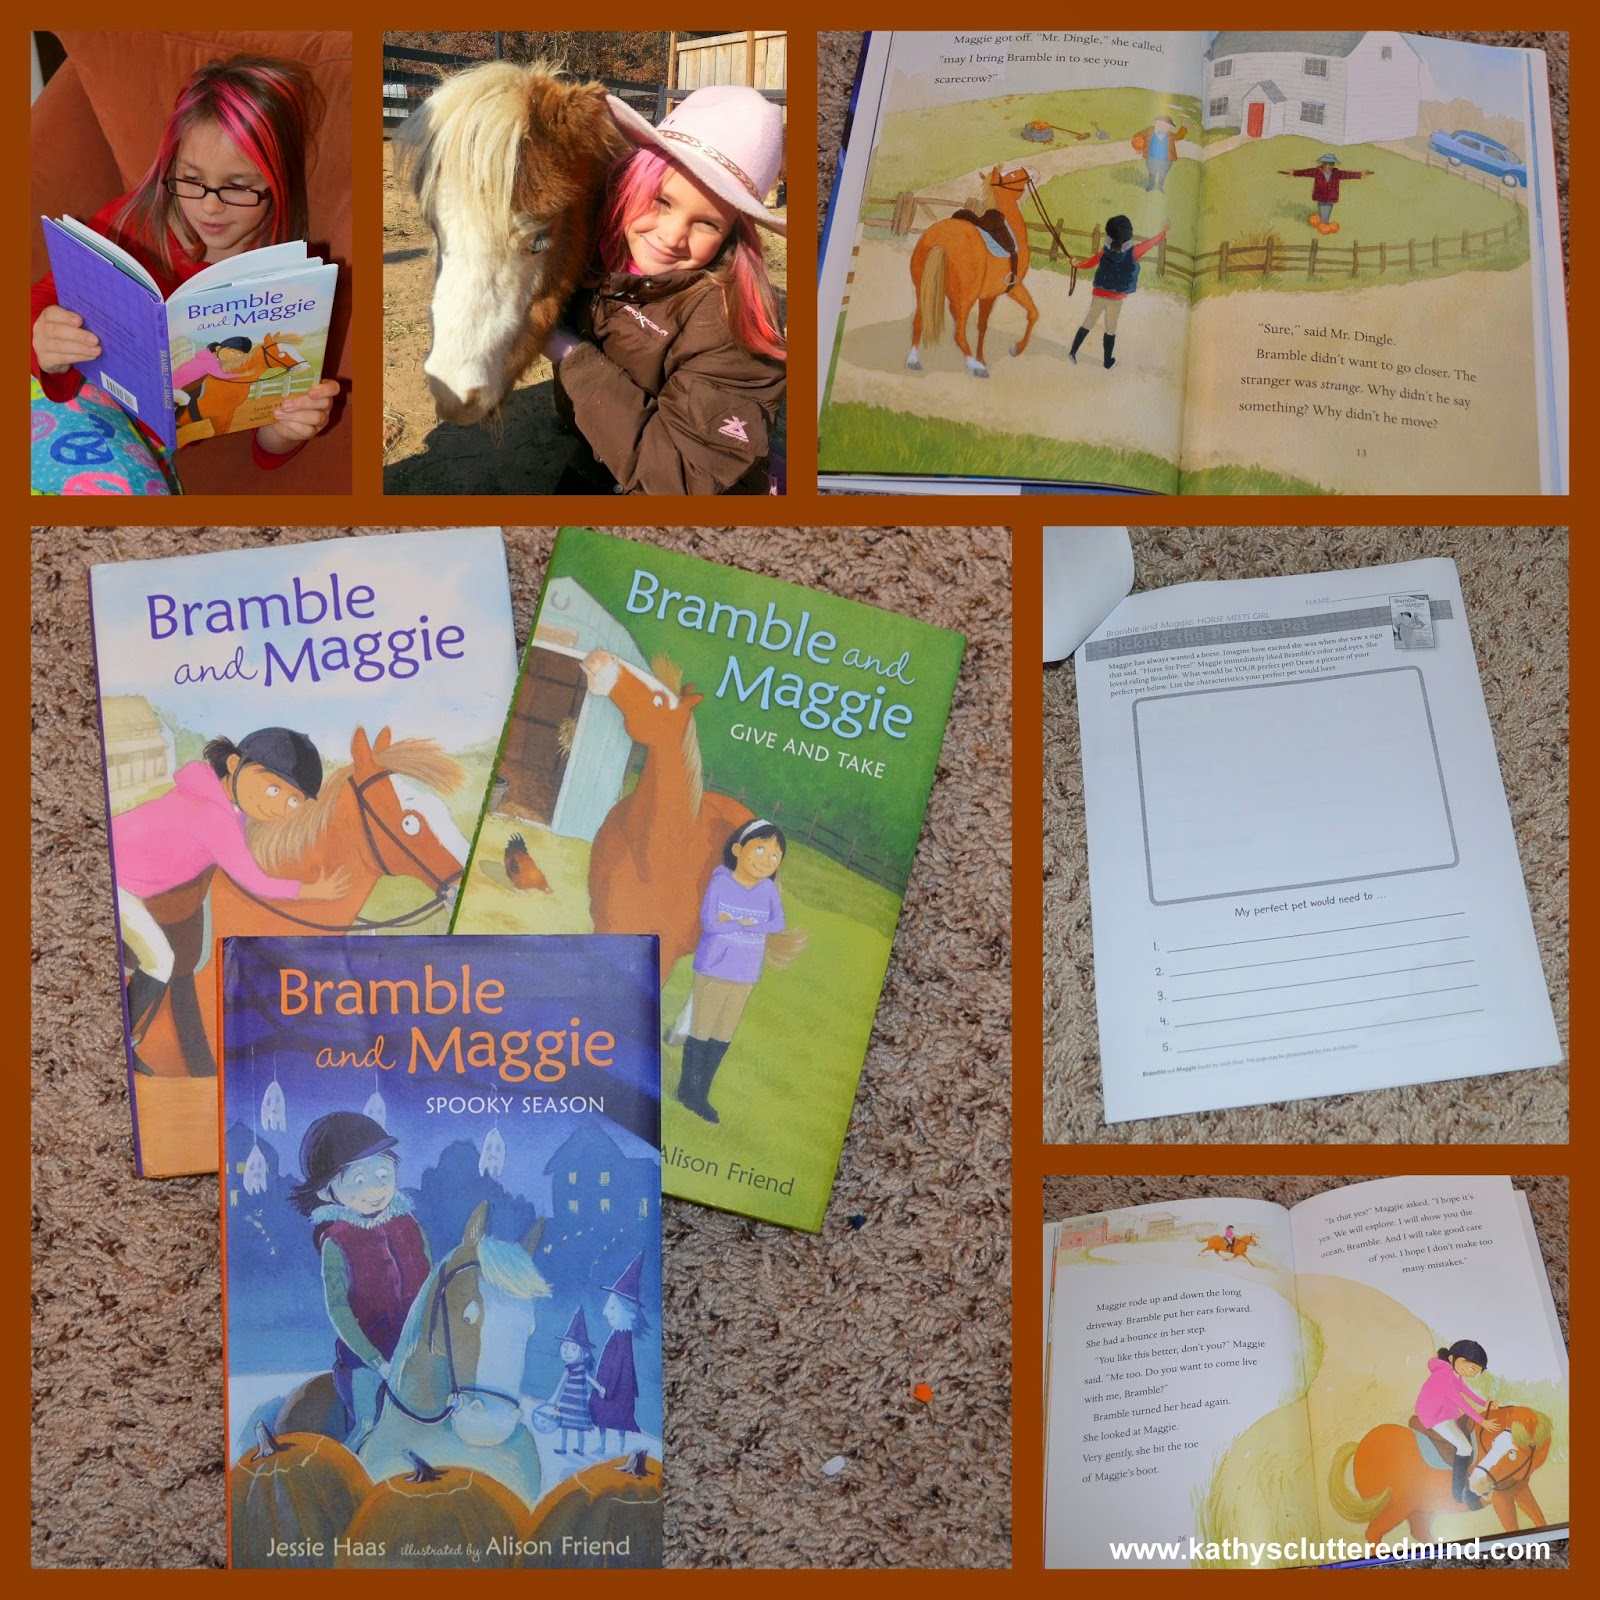 The Books Are Fun, Engaging And Teach Important Lessons On Character  Traits, Friendship, Fear As Well As Horsemanship